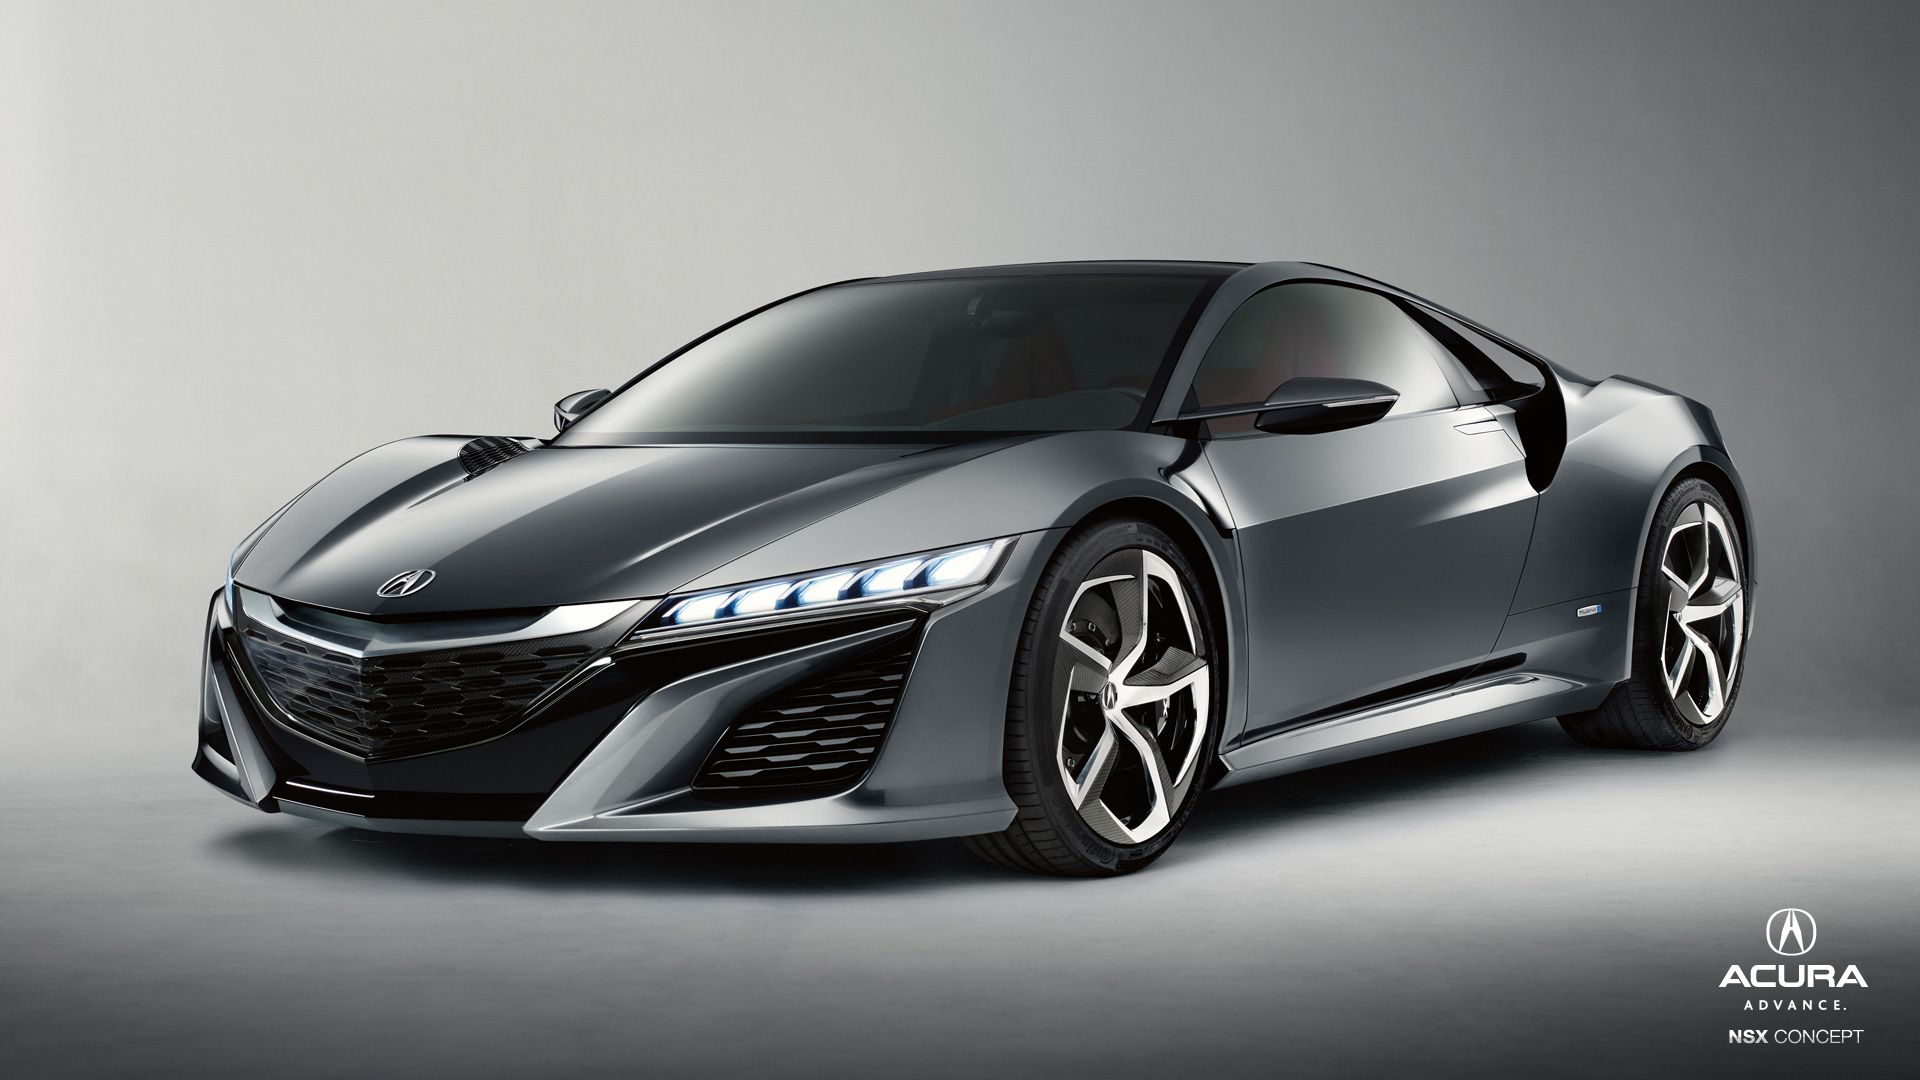 Acura Car Wallpapers 4